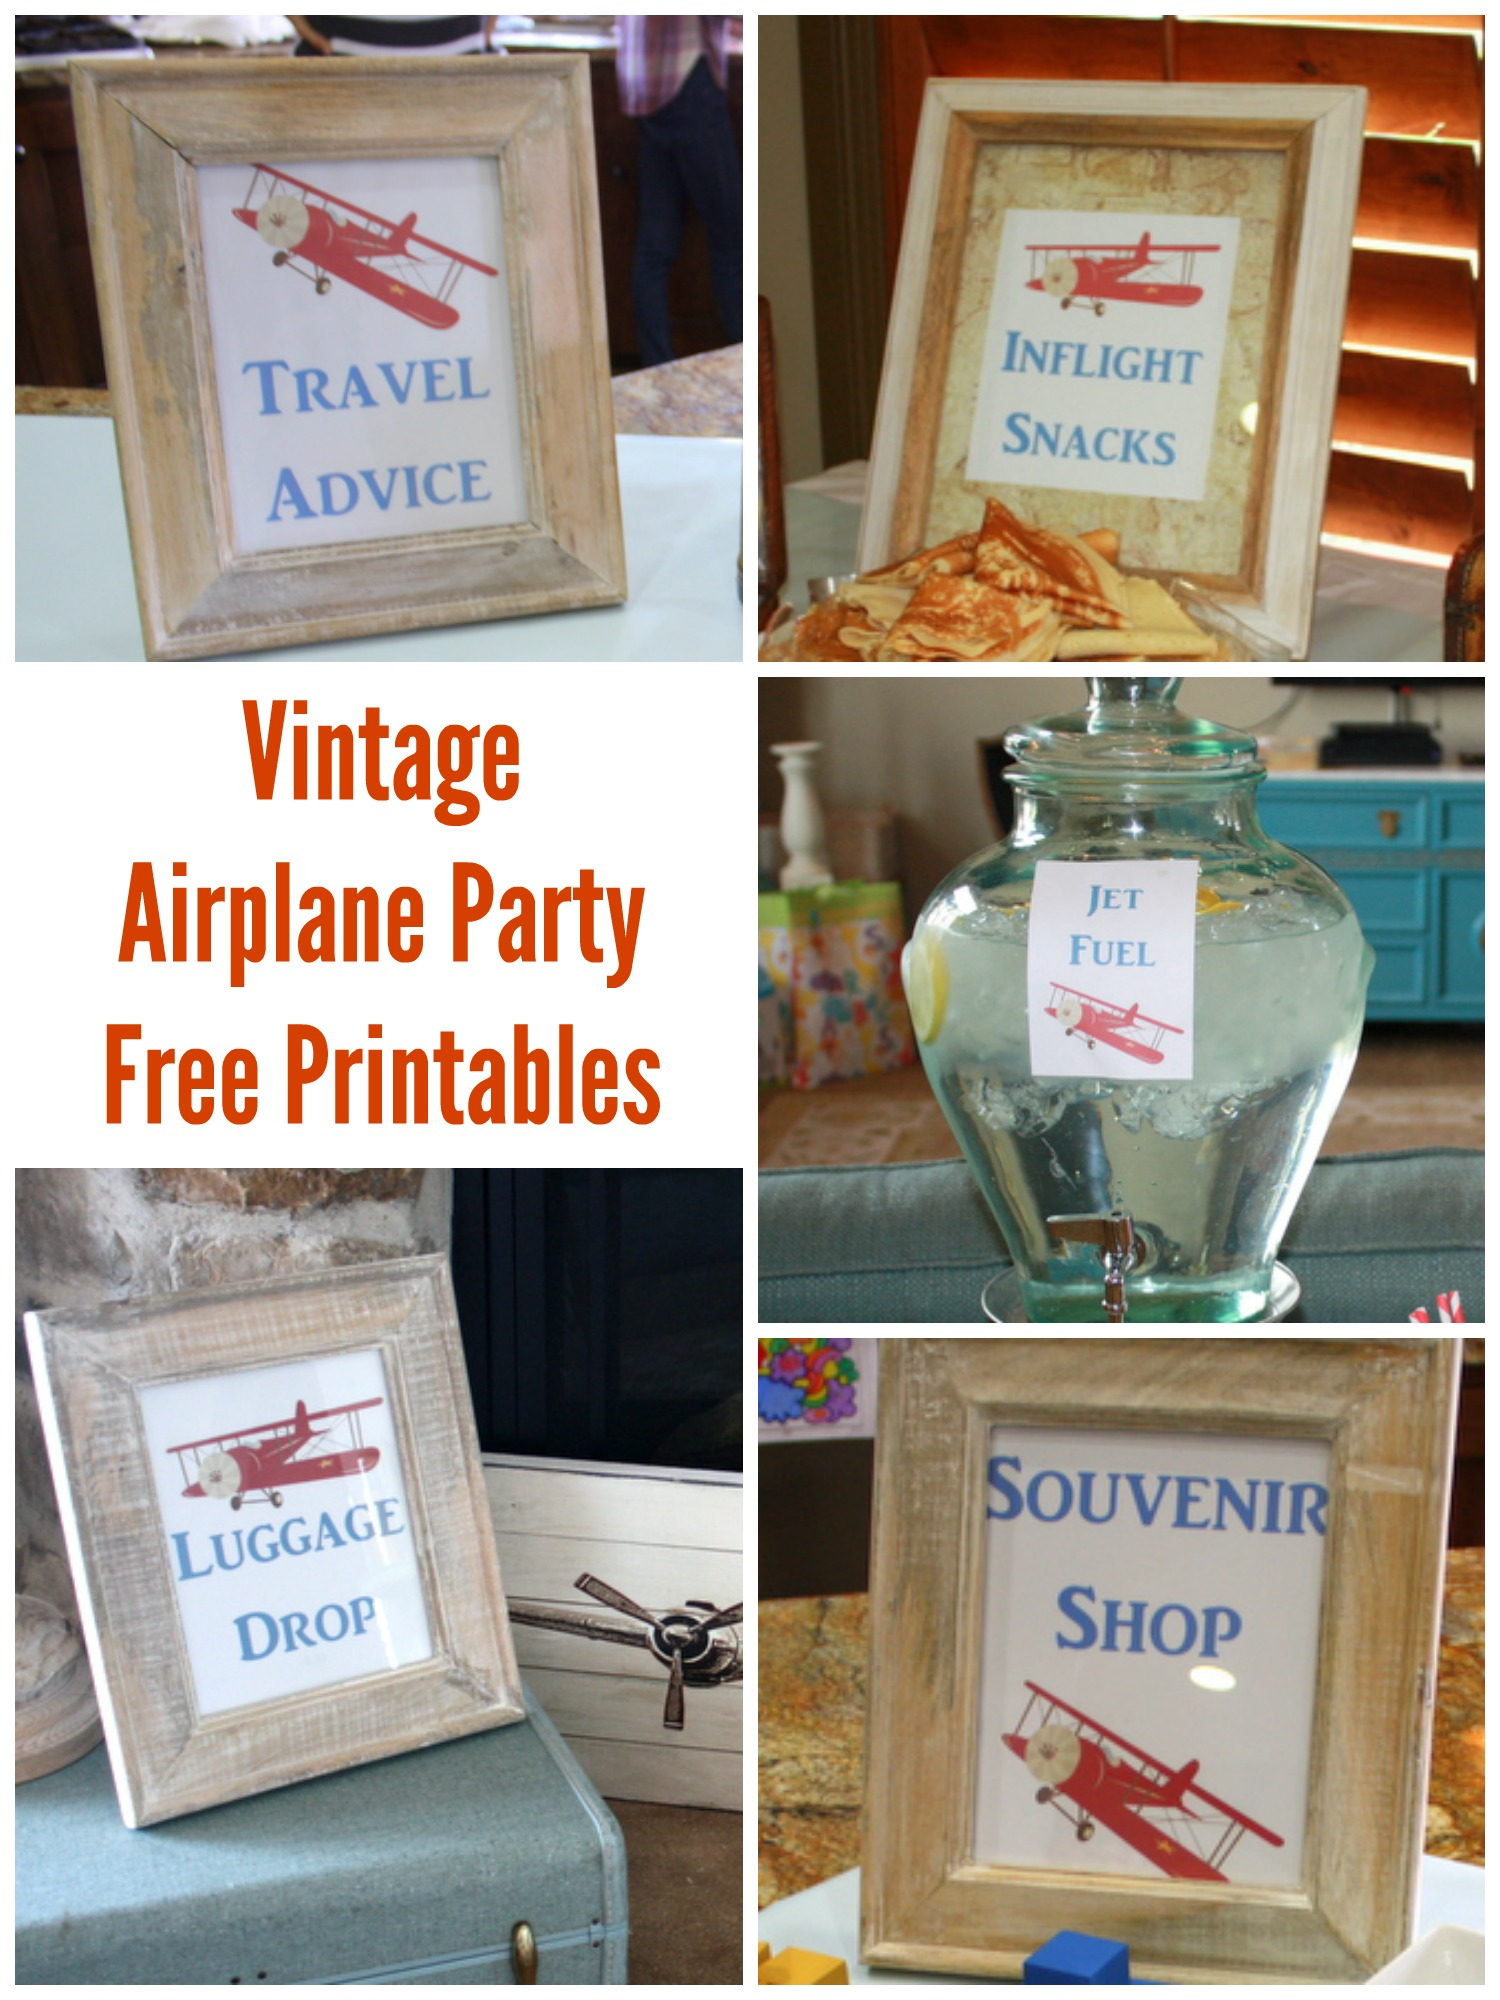 Vintage Airplane Shower Printables & Games - events to ...